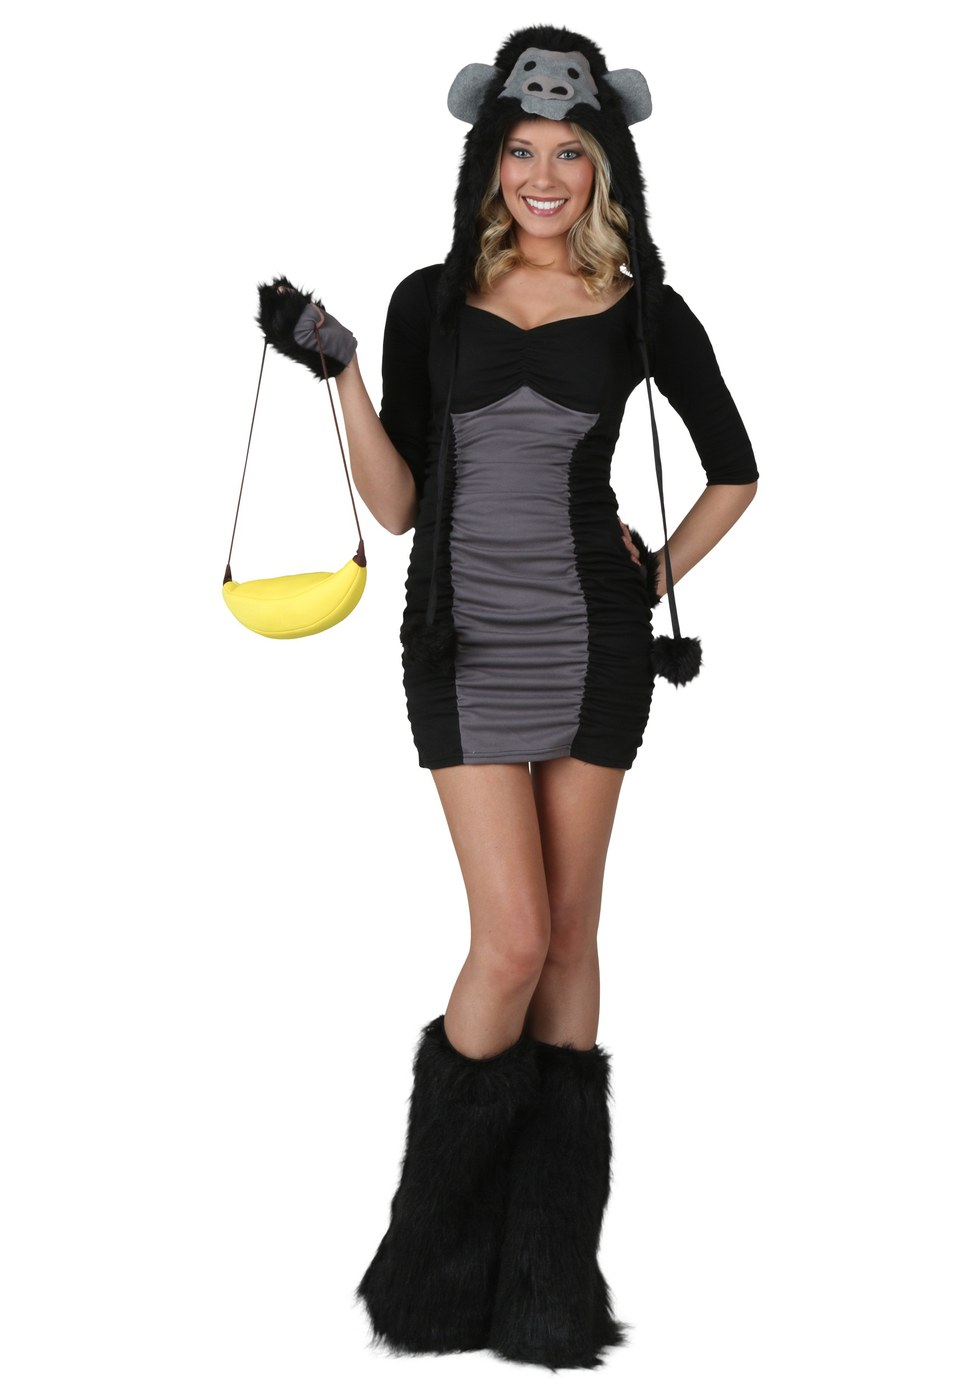 11 highly offensive halloween costumes to avoid this halloween